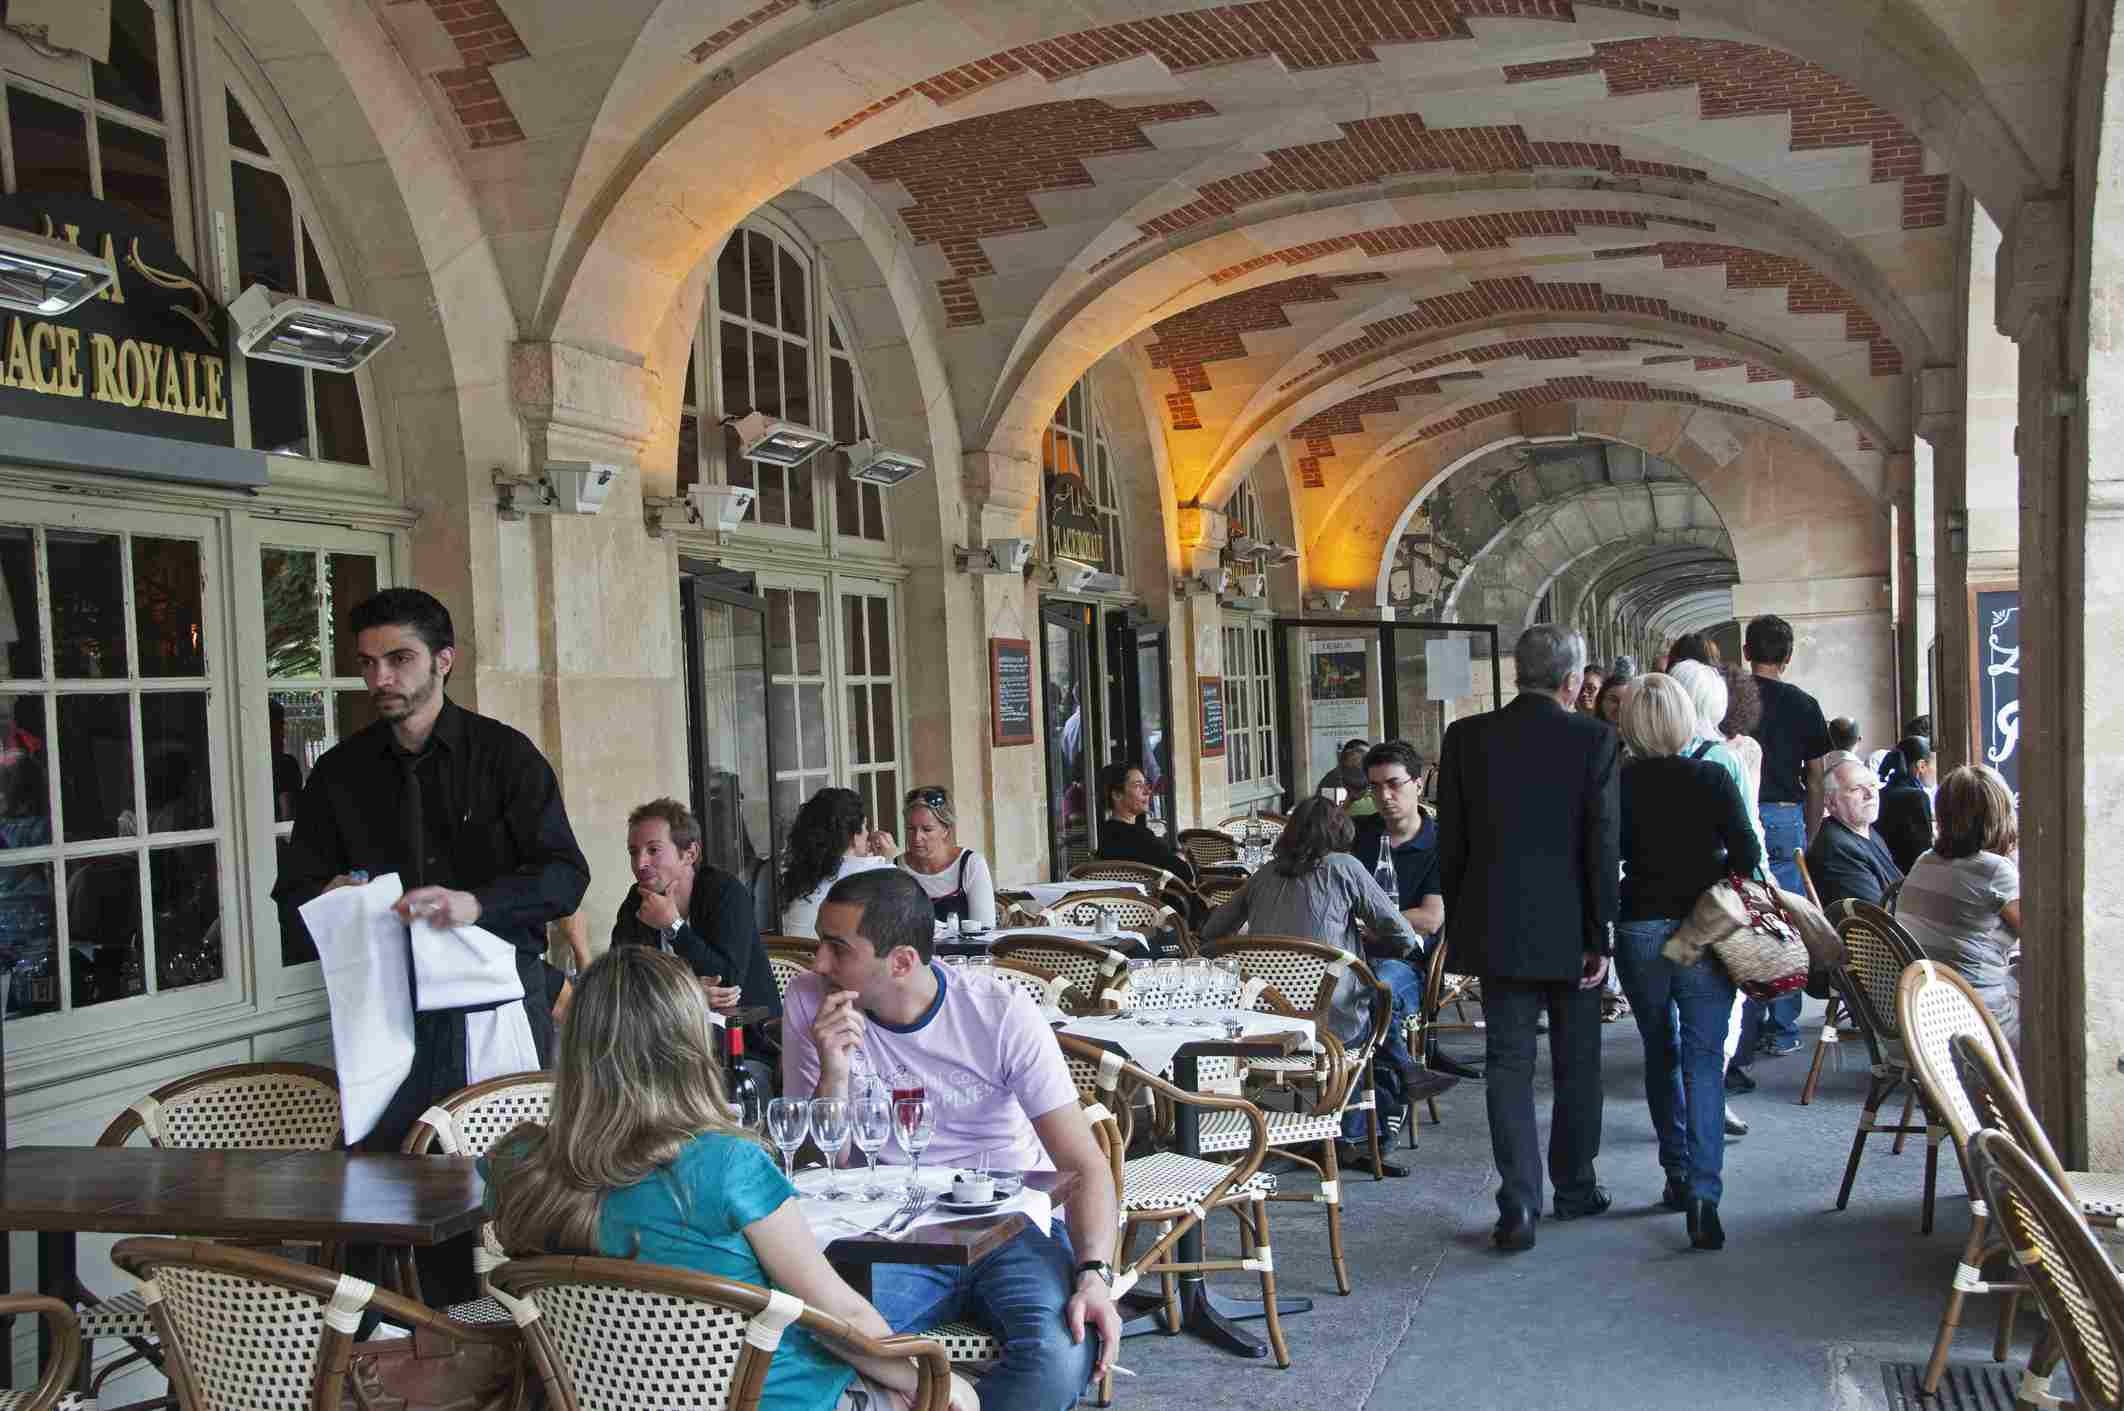 There are several restaurants and cafes nestled under the covered arcades of the Place des Vosges.